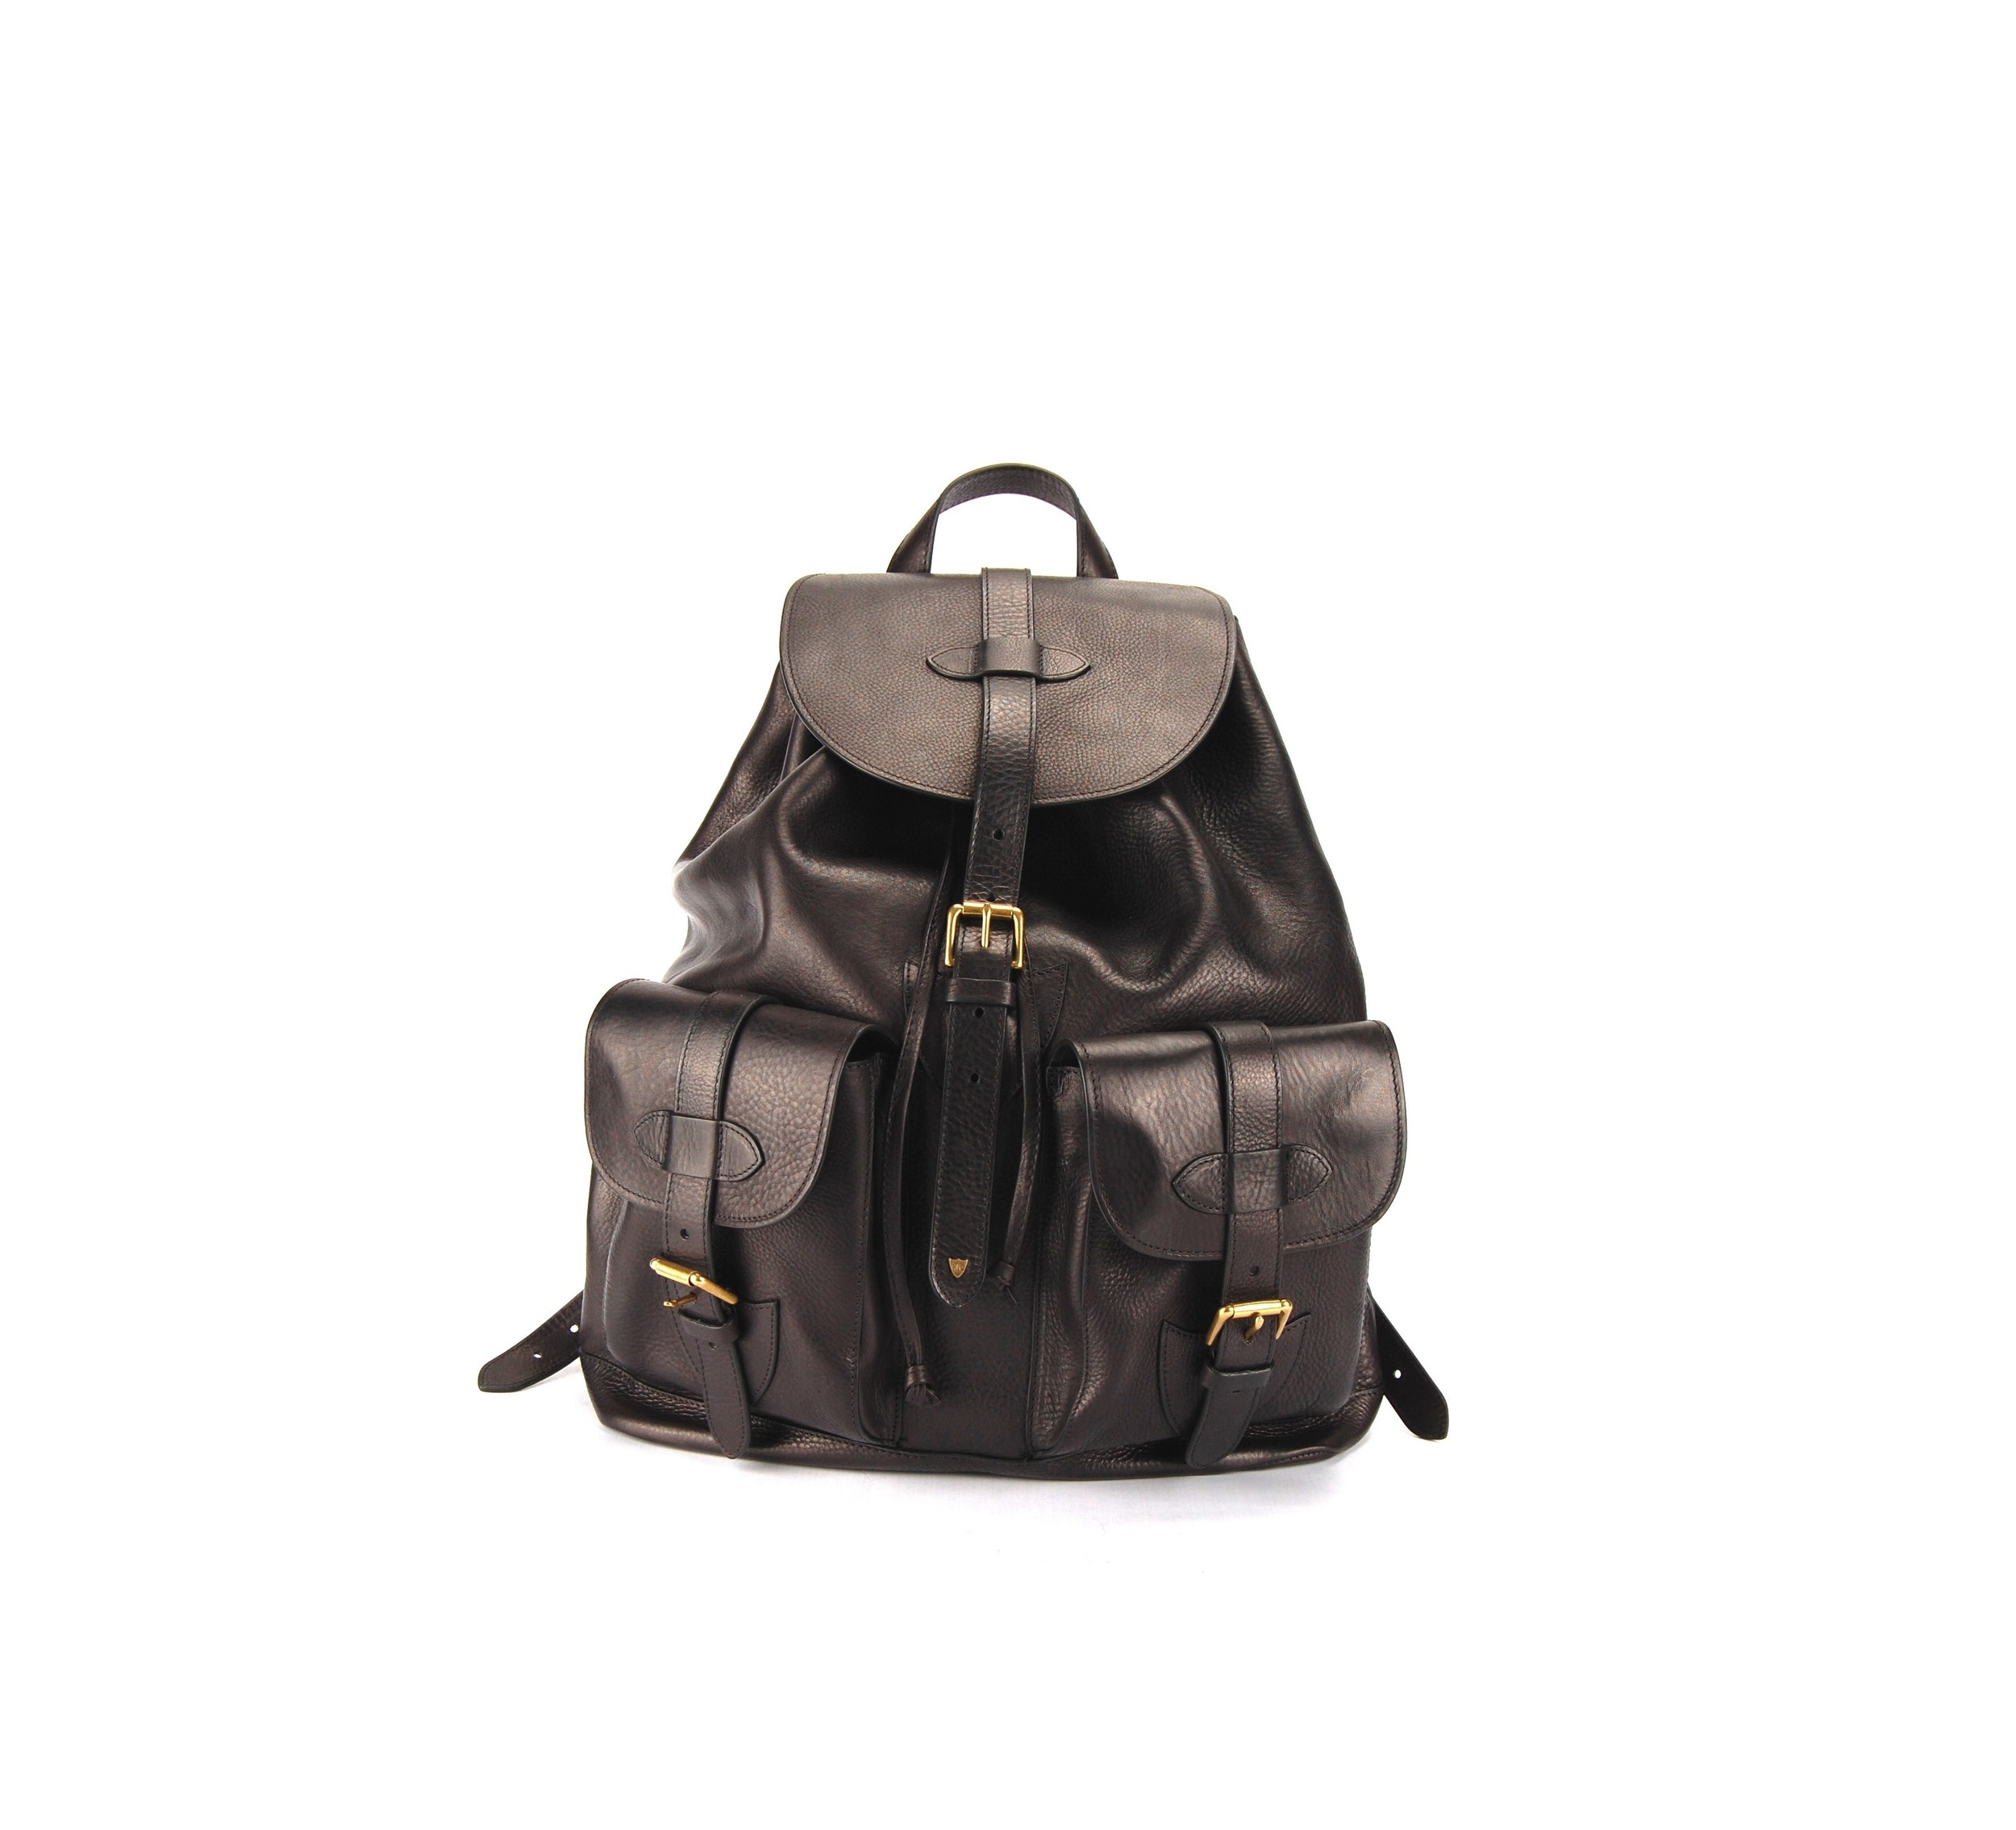 HTC Leather Rucksack